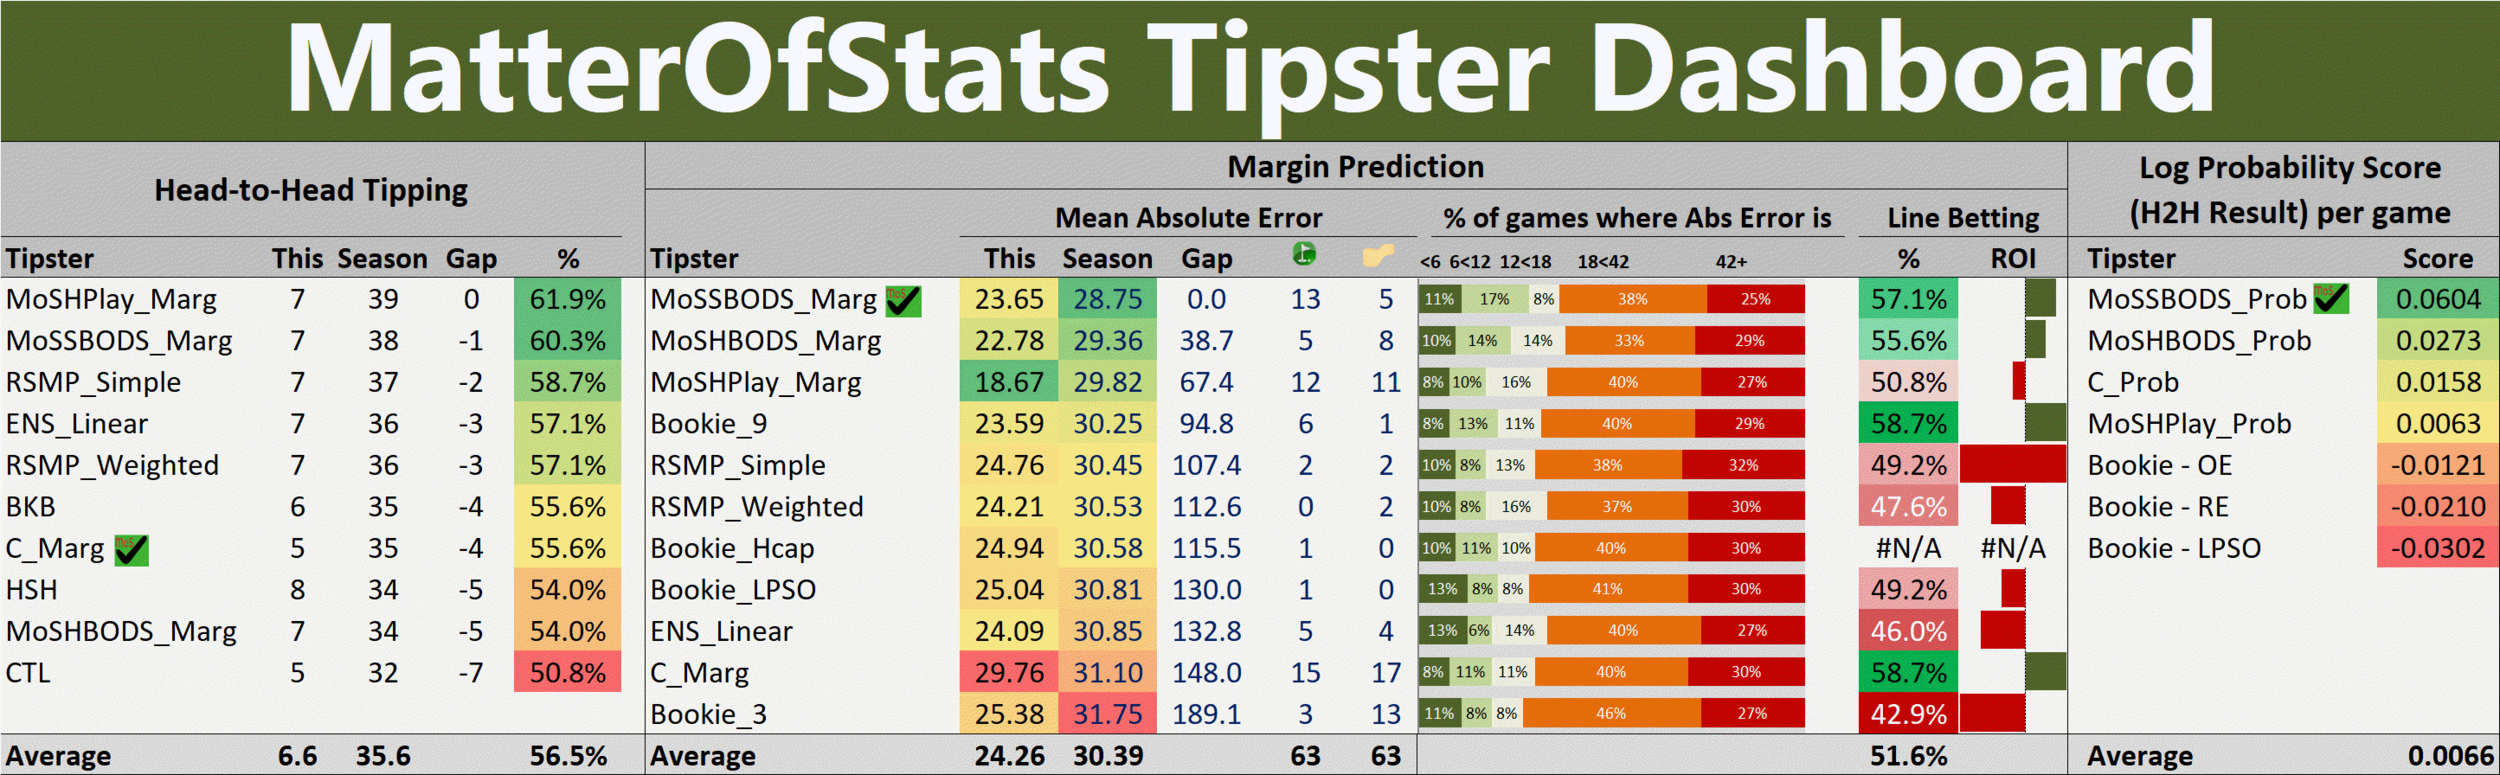 R7 - Tipster Dashboard.png